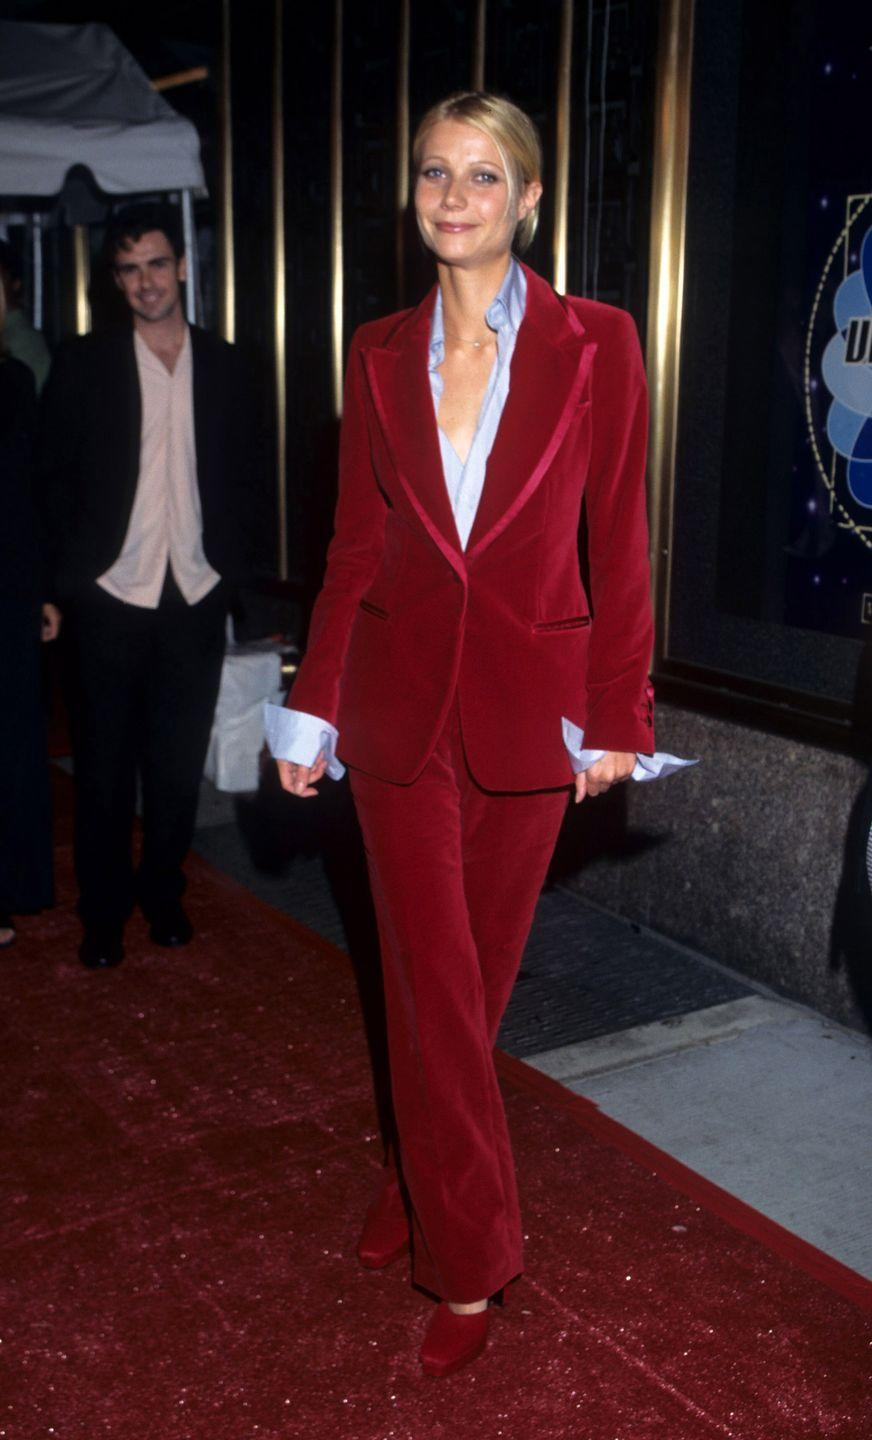 """<p>Most celebs opt for the """"less is more"""" philosophy when it comes to dressing for the MTV VMAs. Gwynnie opted for the """"more is more"""" train of thought in an oversized red velvet suit with matching shoes. Interesting choice.</p>"""